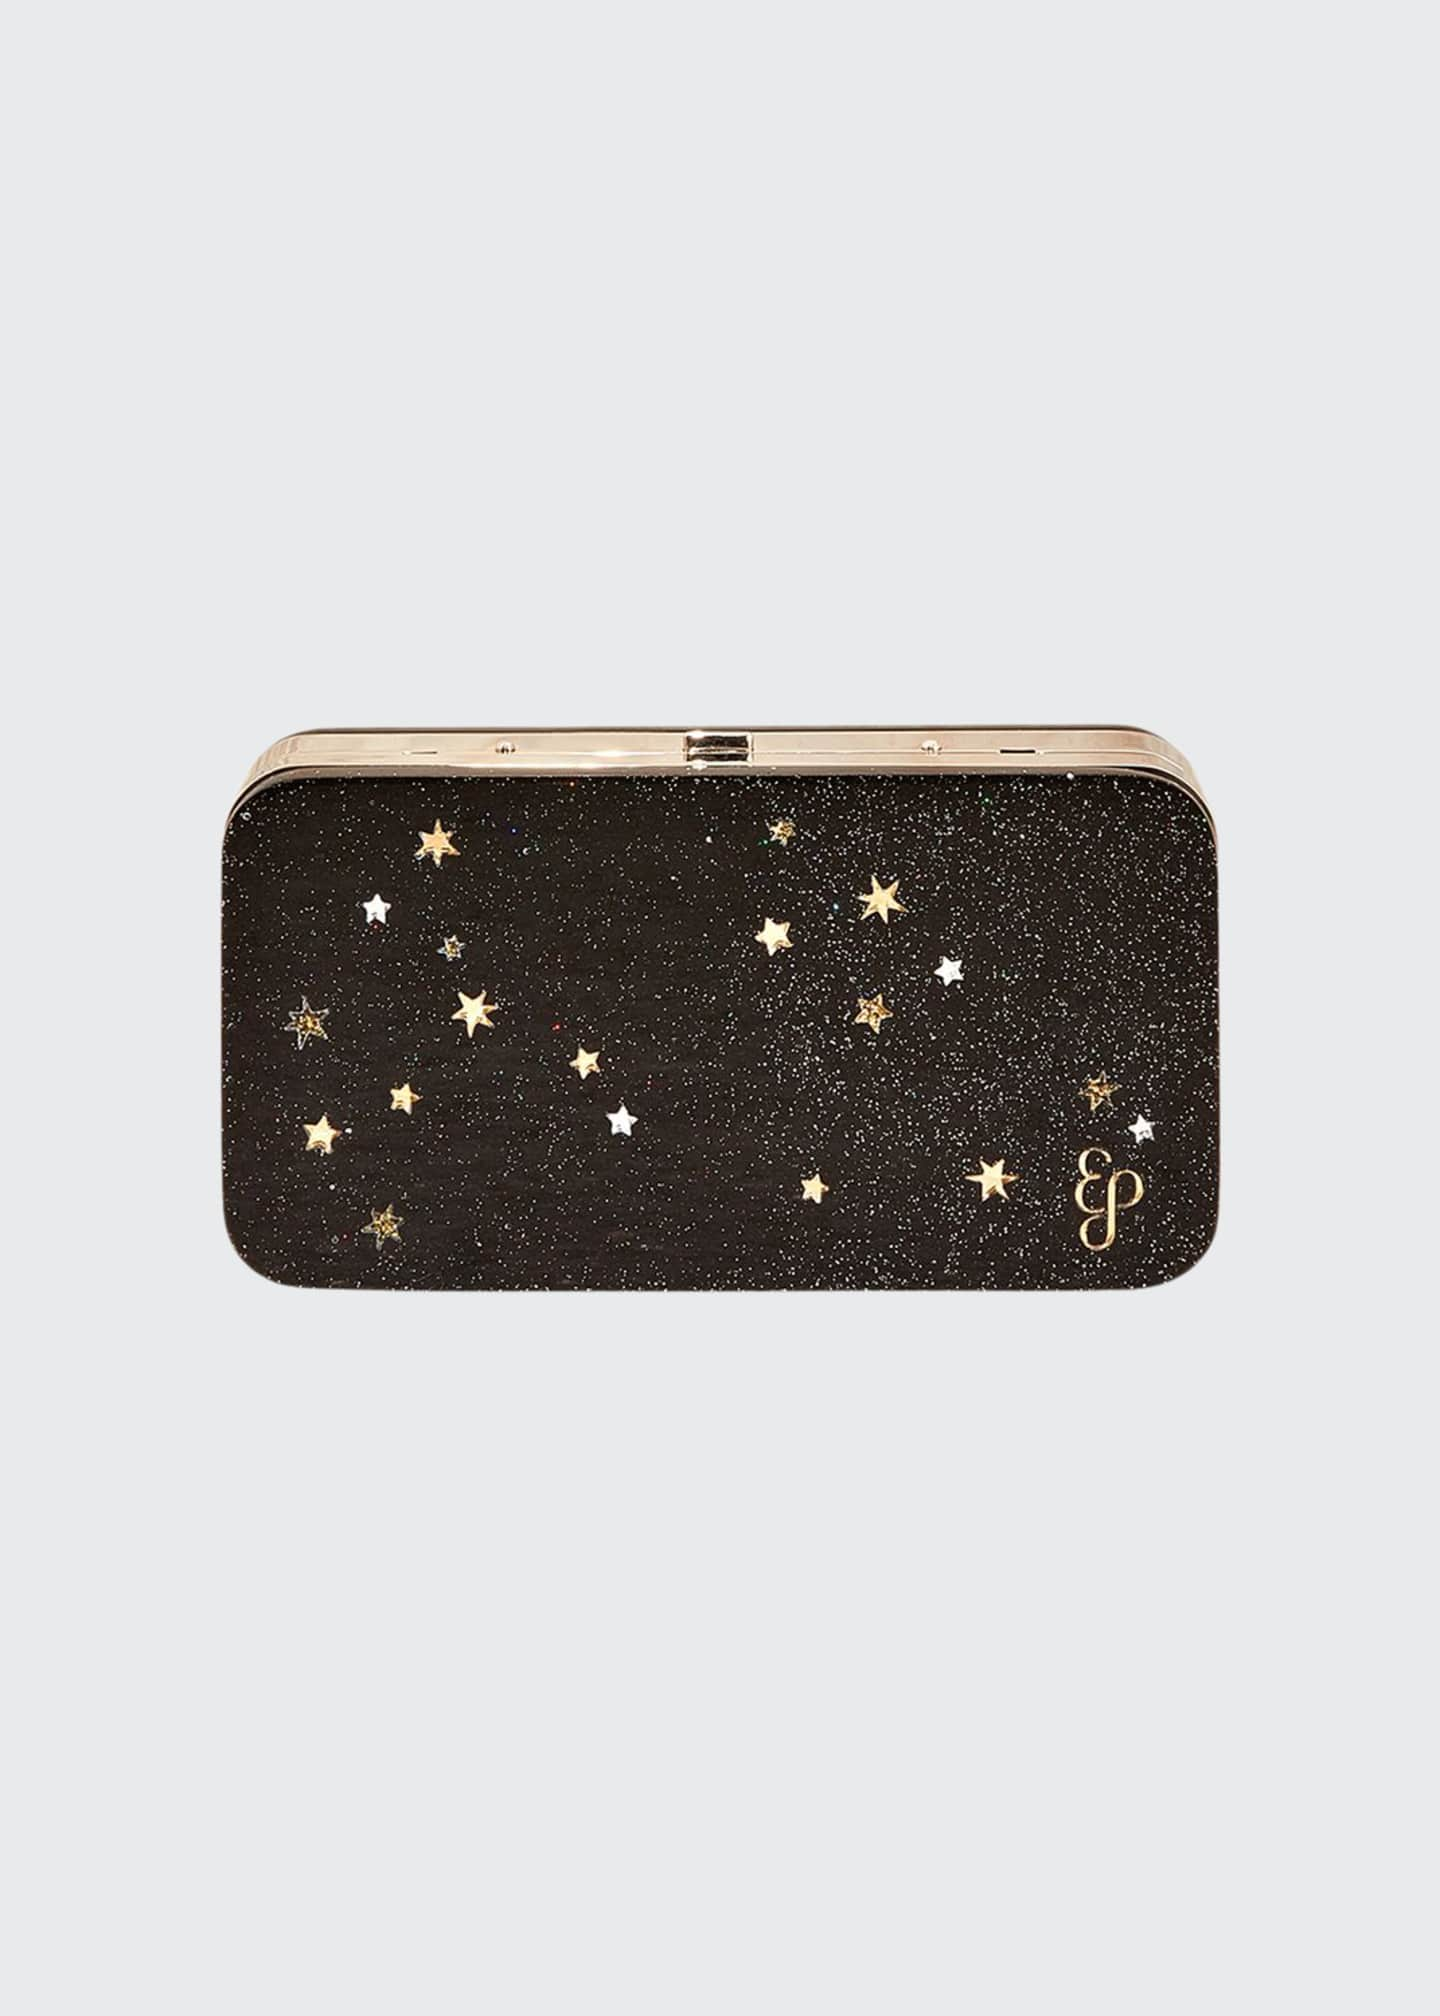 Edie Parker Glittered Acrylic Clutch Bag